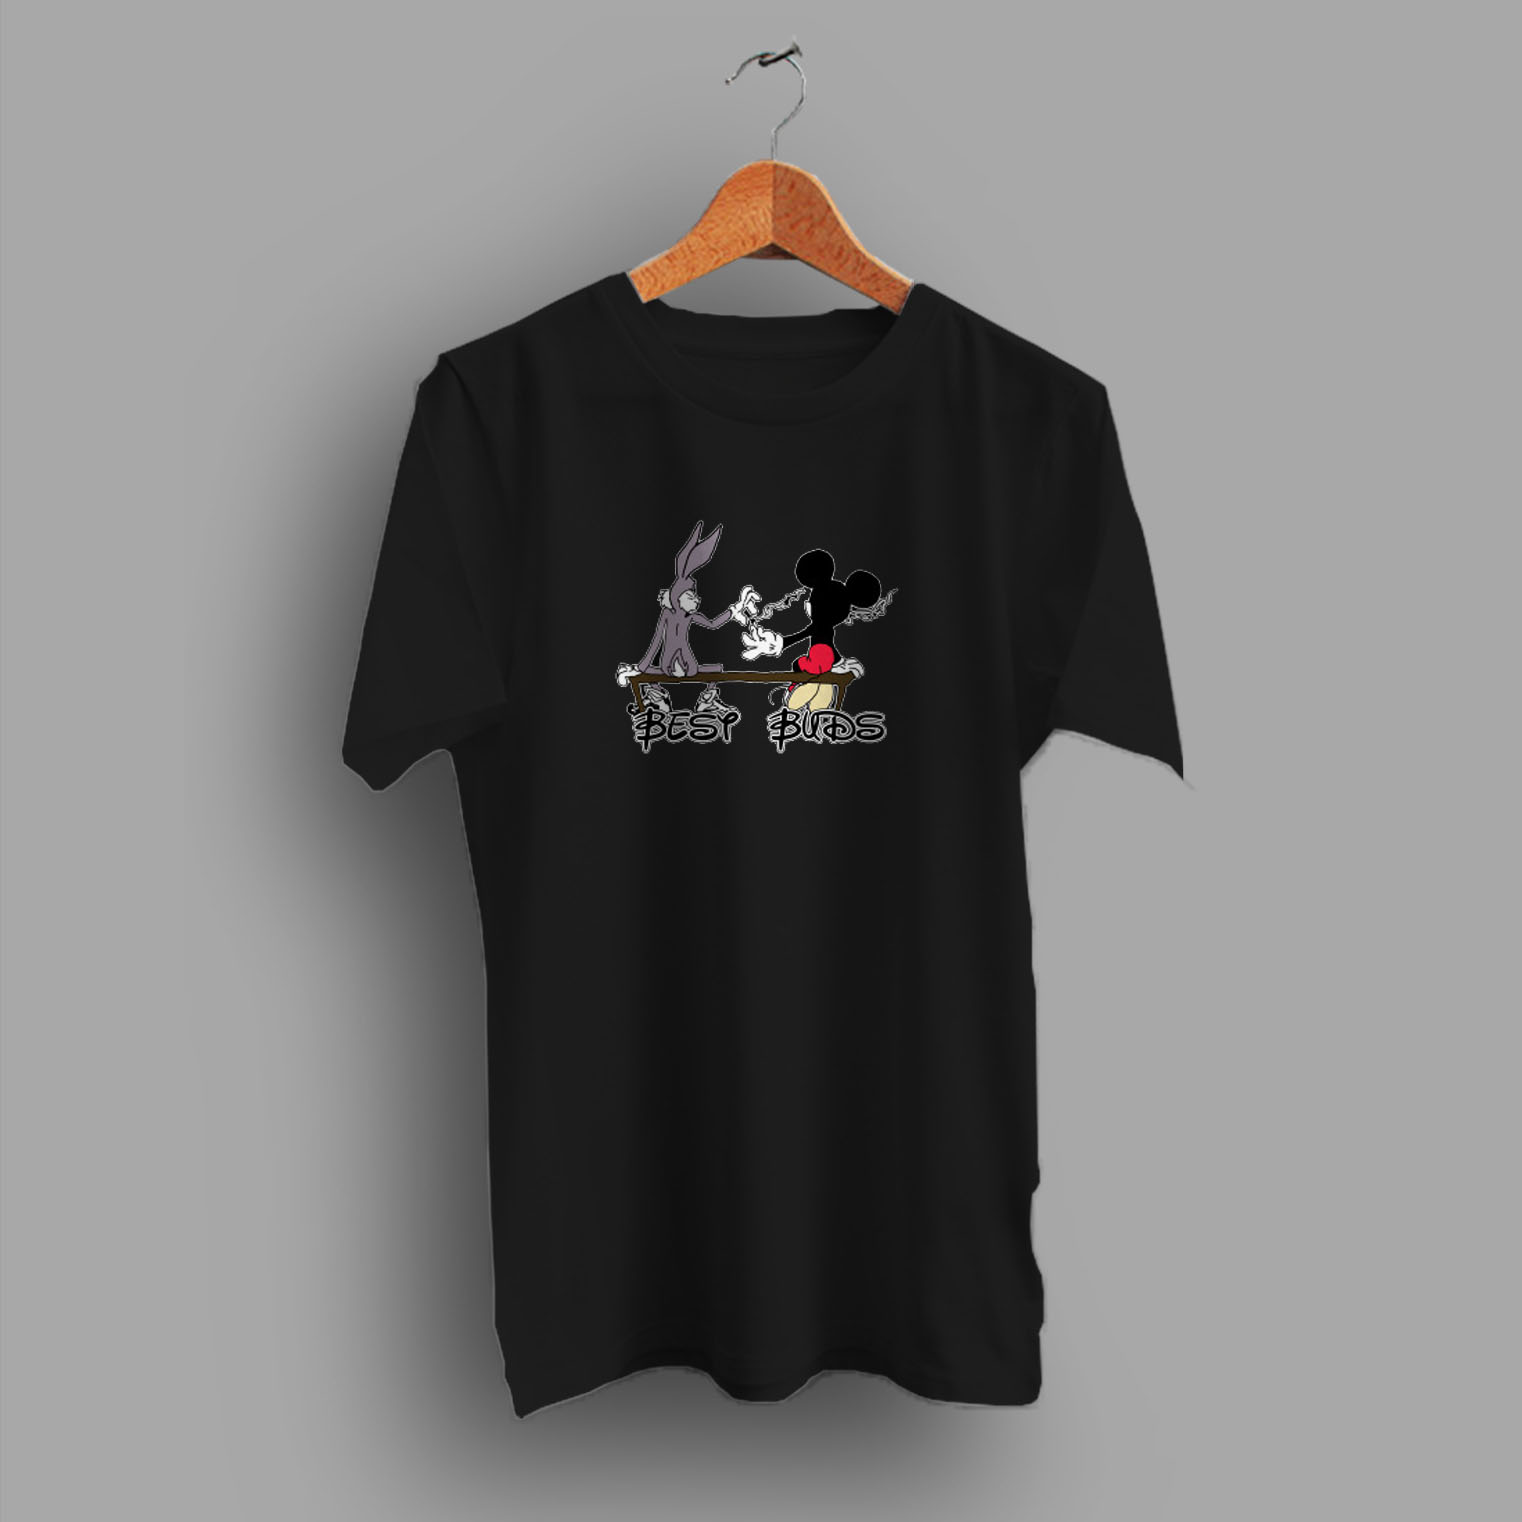 5d56c0647e373c ... T shirts, Tank Tops. Best Buds Funny Mickey Mouse Disney Parody T Shirt